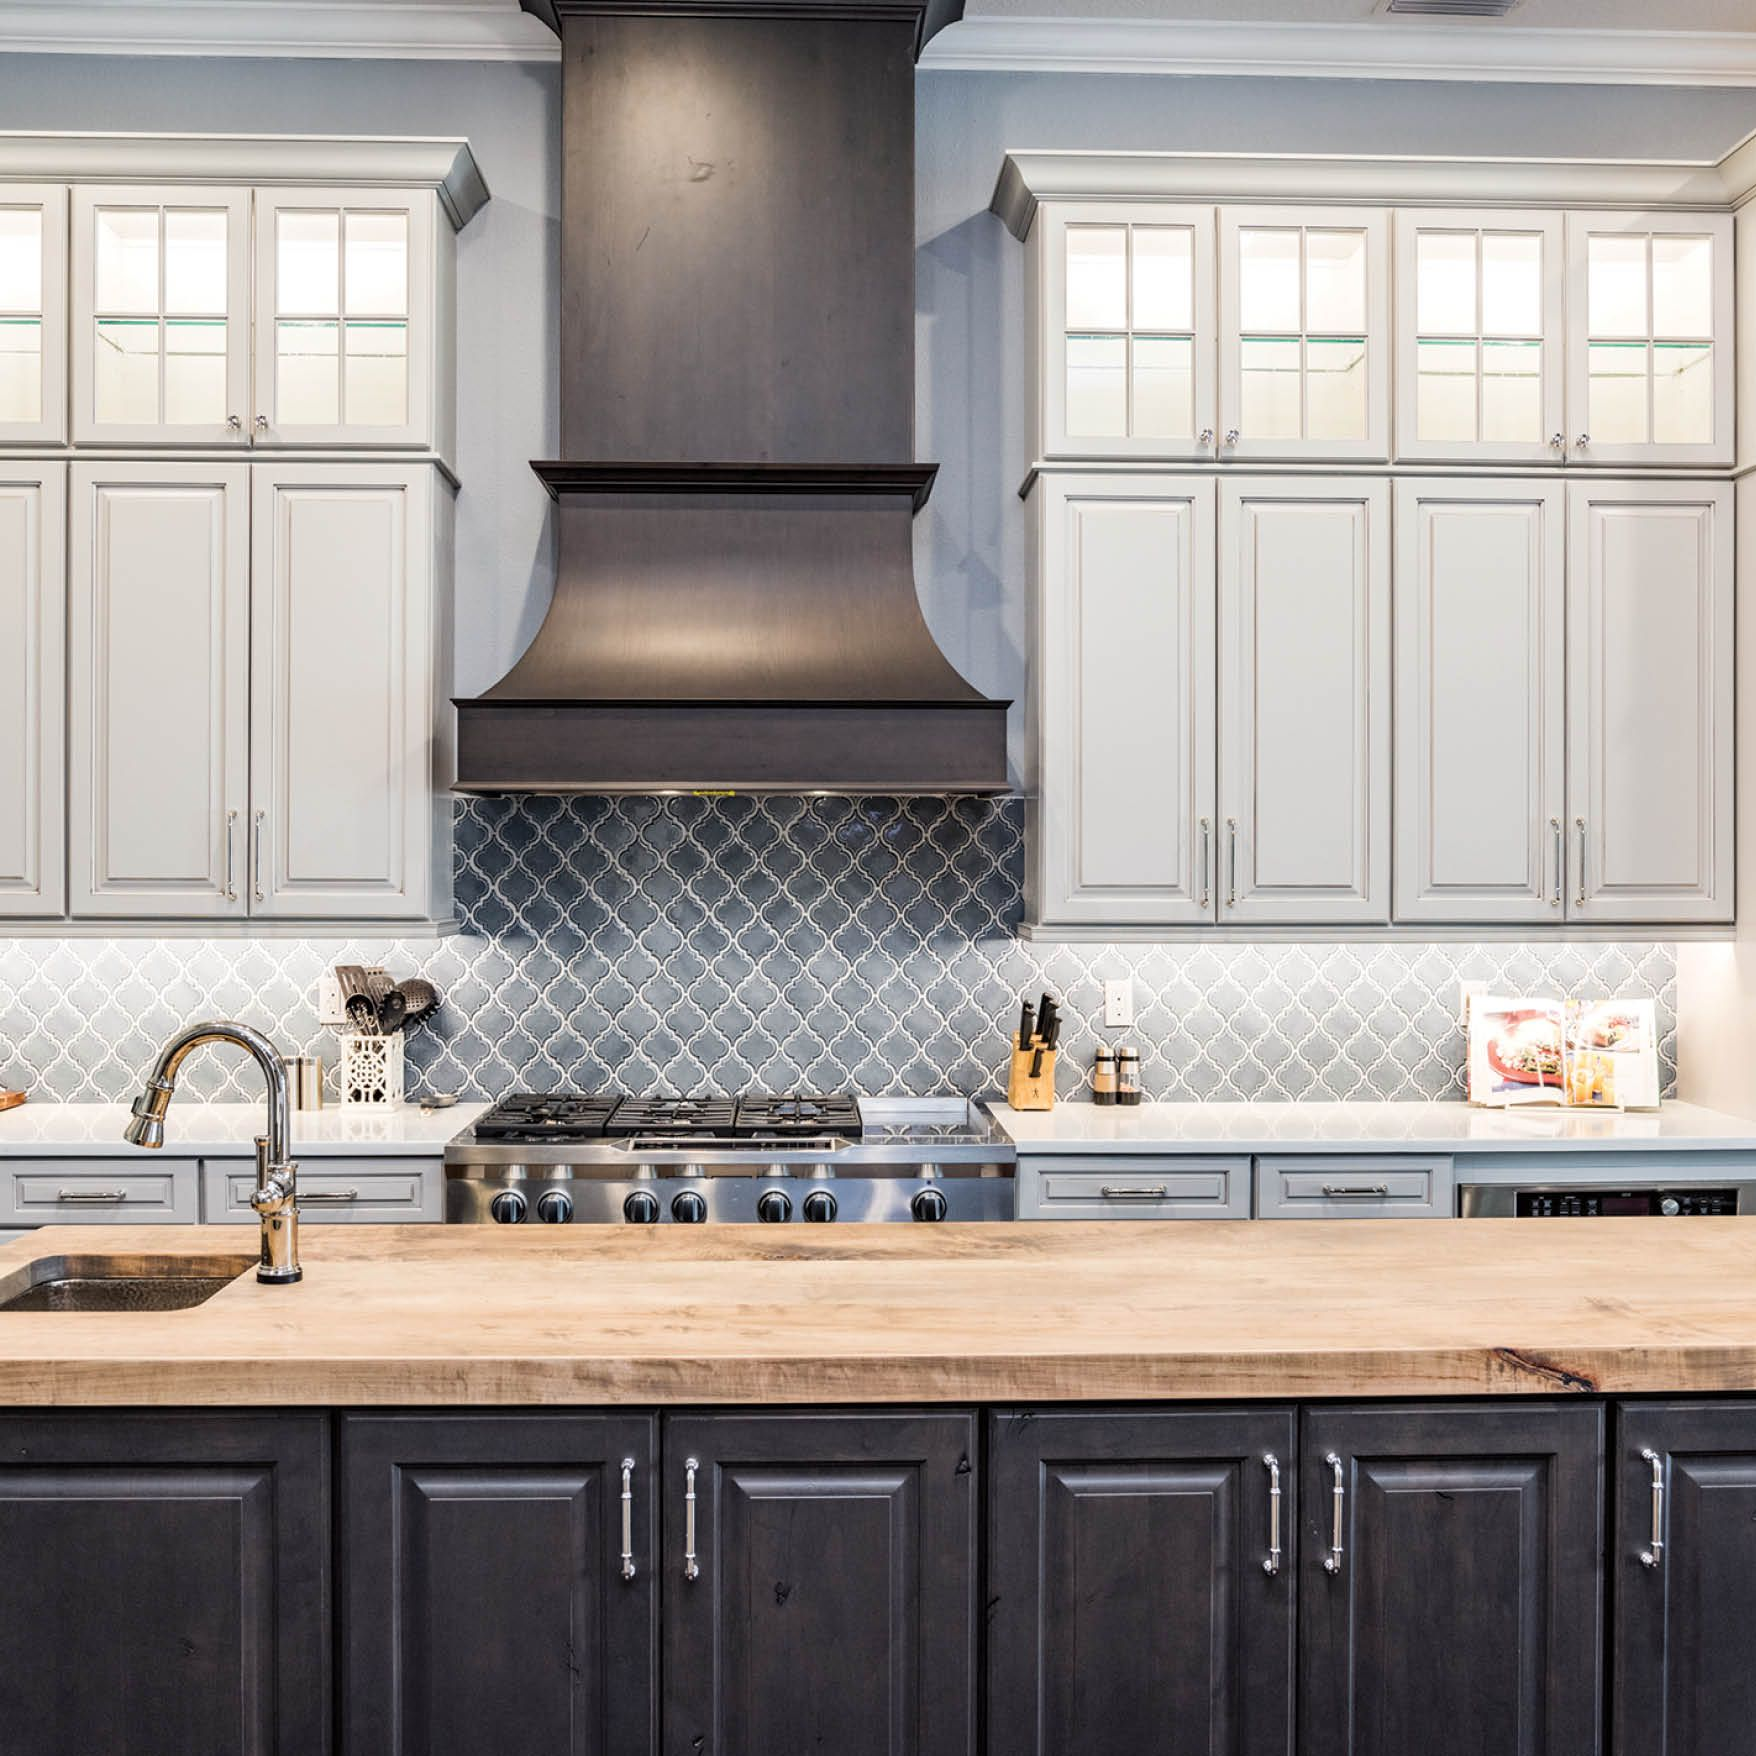 Traditional Design For Modern Kitchens Using 660 Painted Ember Glaze And Cherry Slate Kristen L Complete Kitchens Modern Contemporary Kitchen Kitchen Remodel